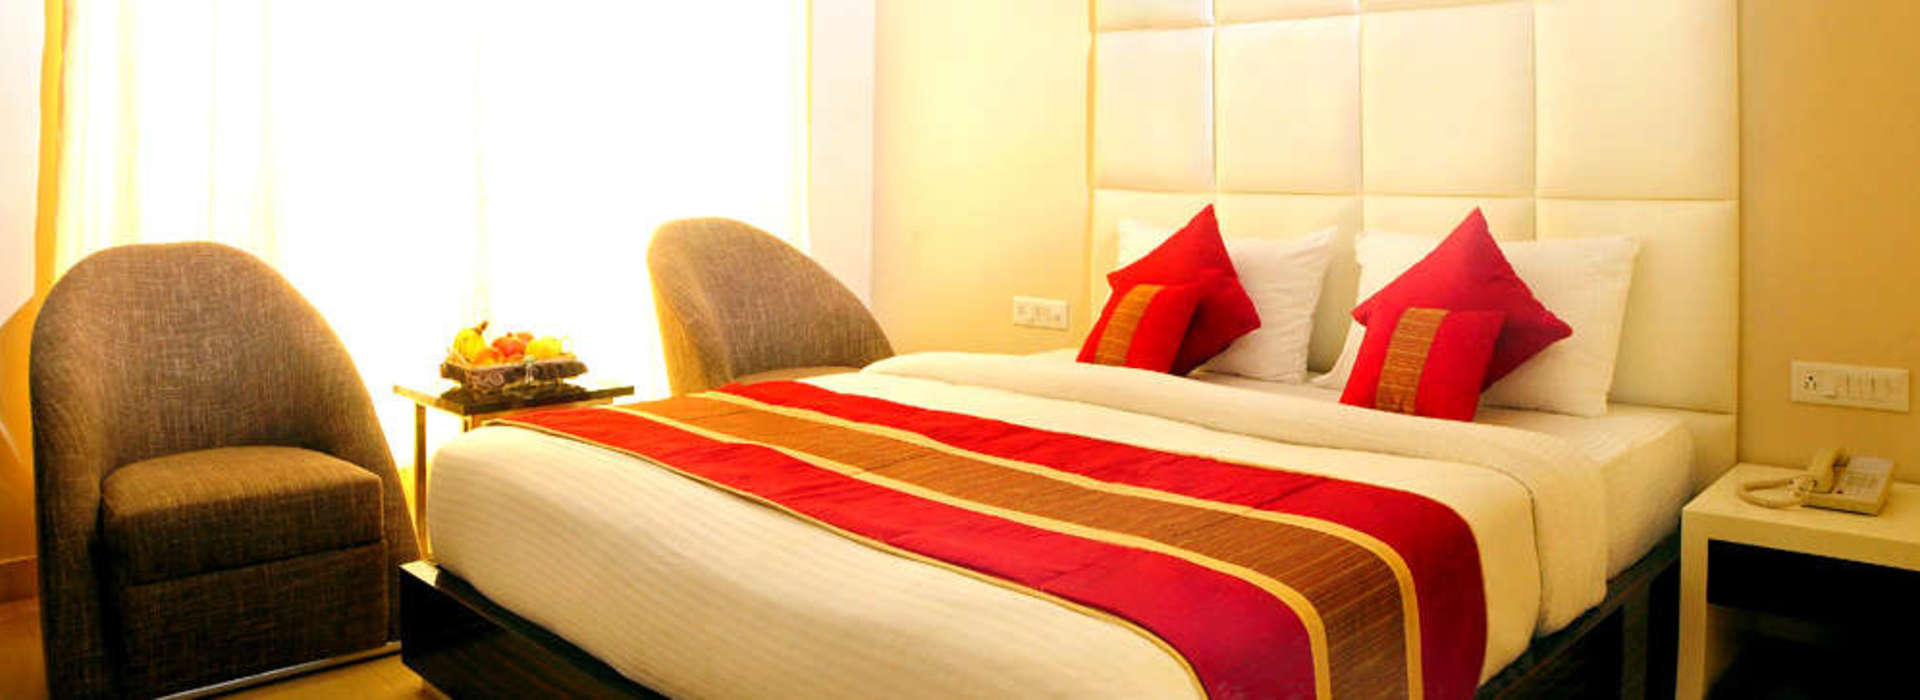 Hotel Bed Manufacturers in Chennai